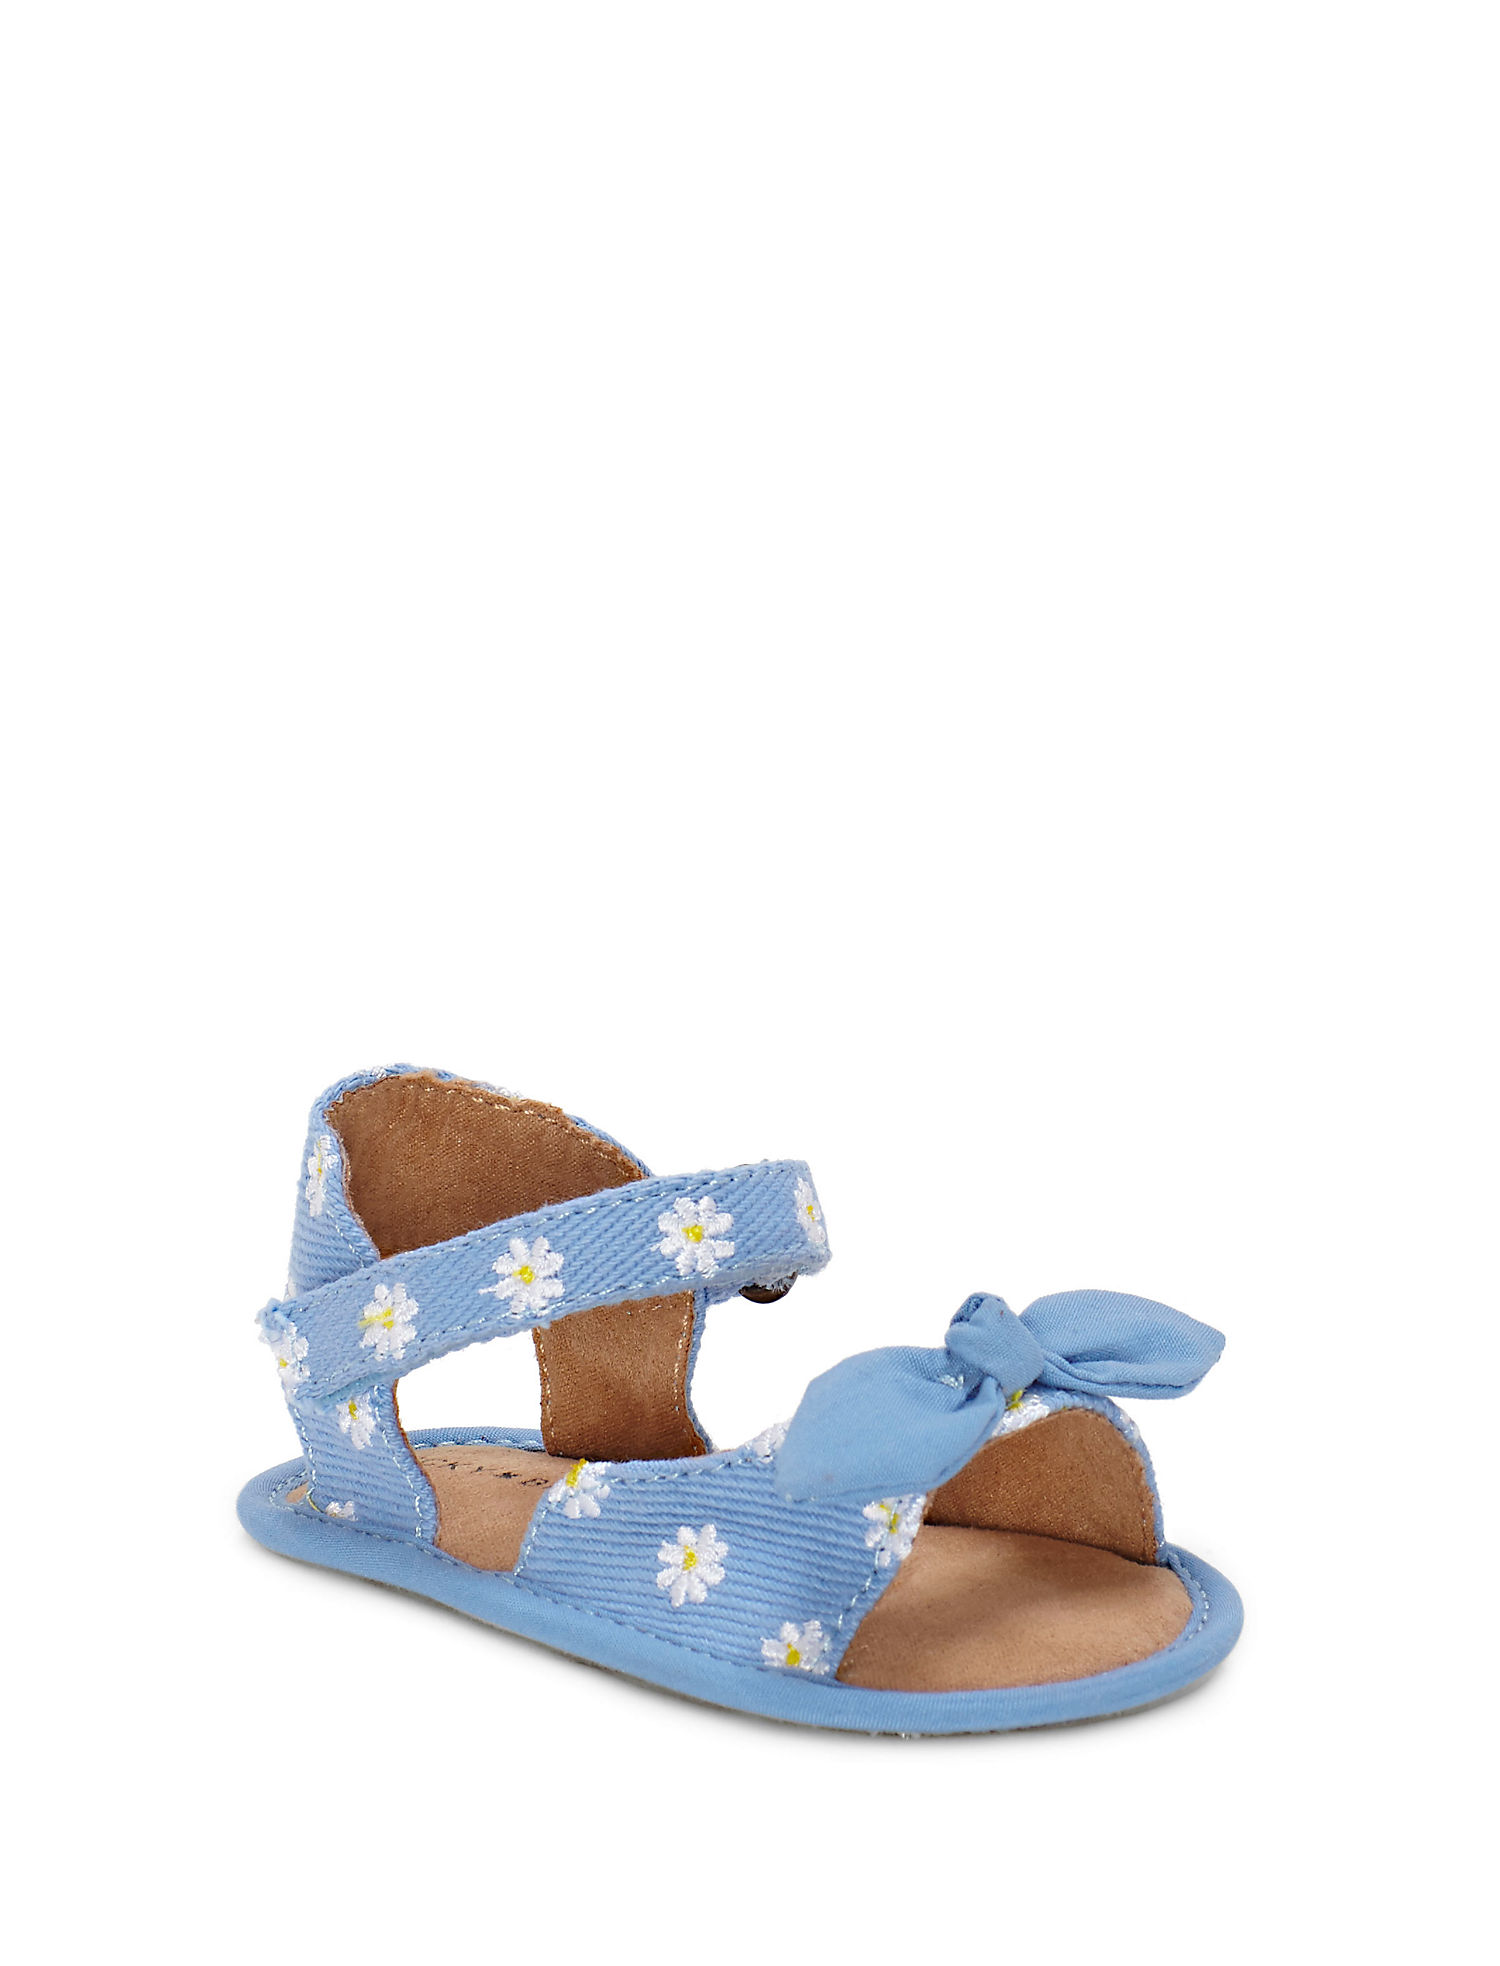 Infant Carbeena Sandal | Tuggl